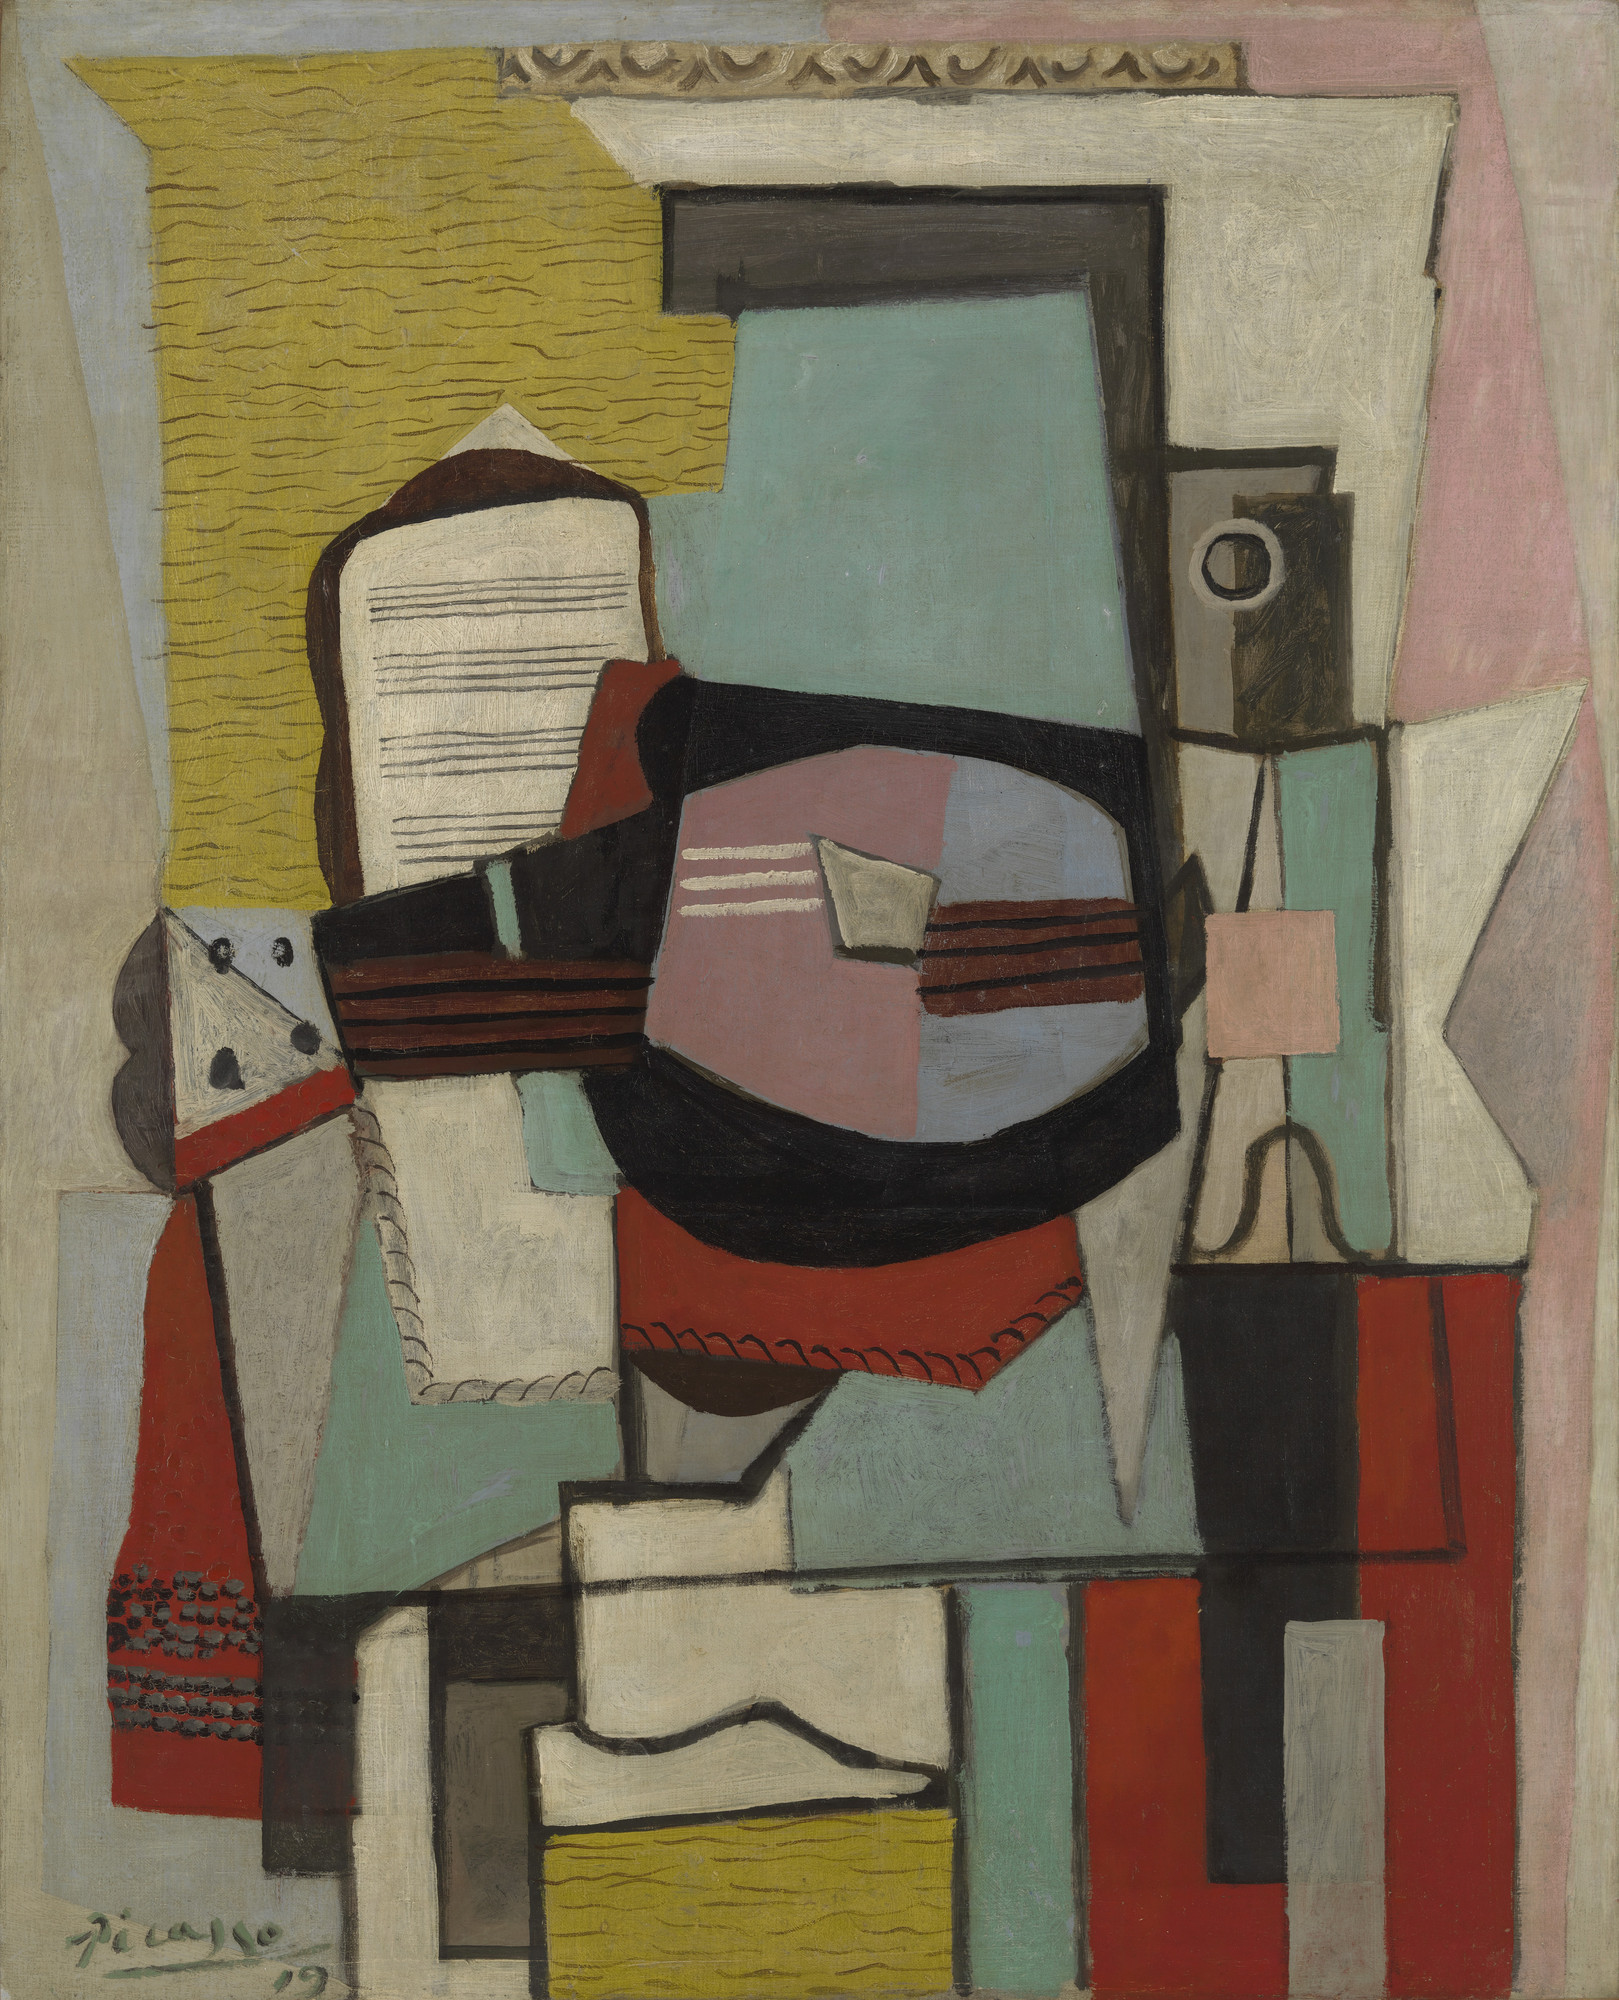 Pablo Picasso. The Guitar. 1919